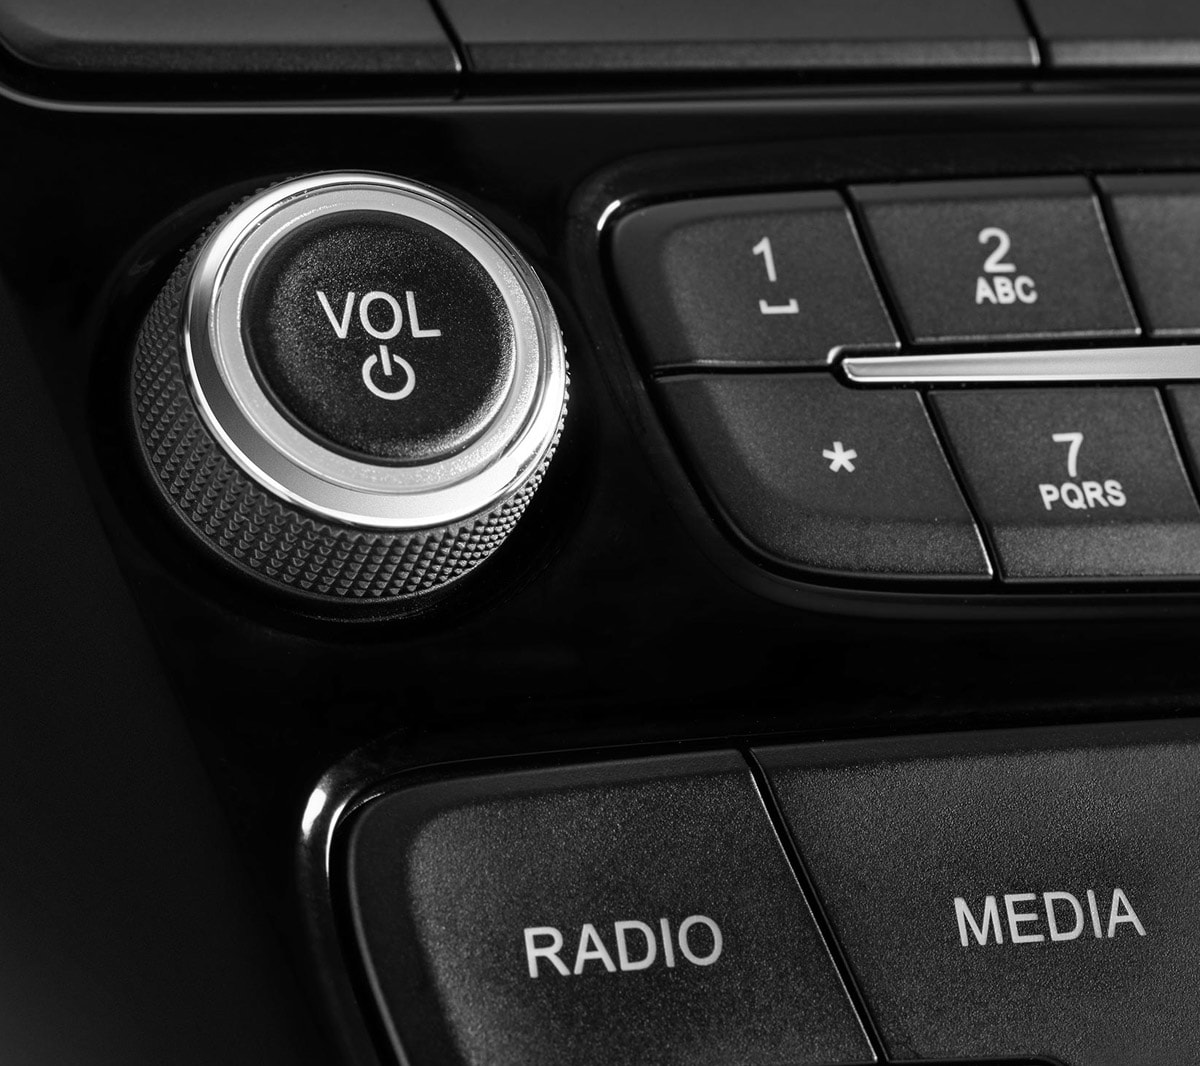 Ford KA+ radio controls in detail